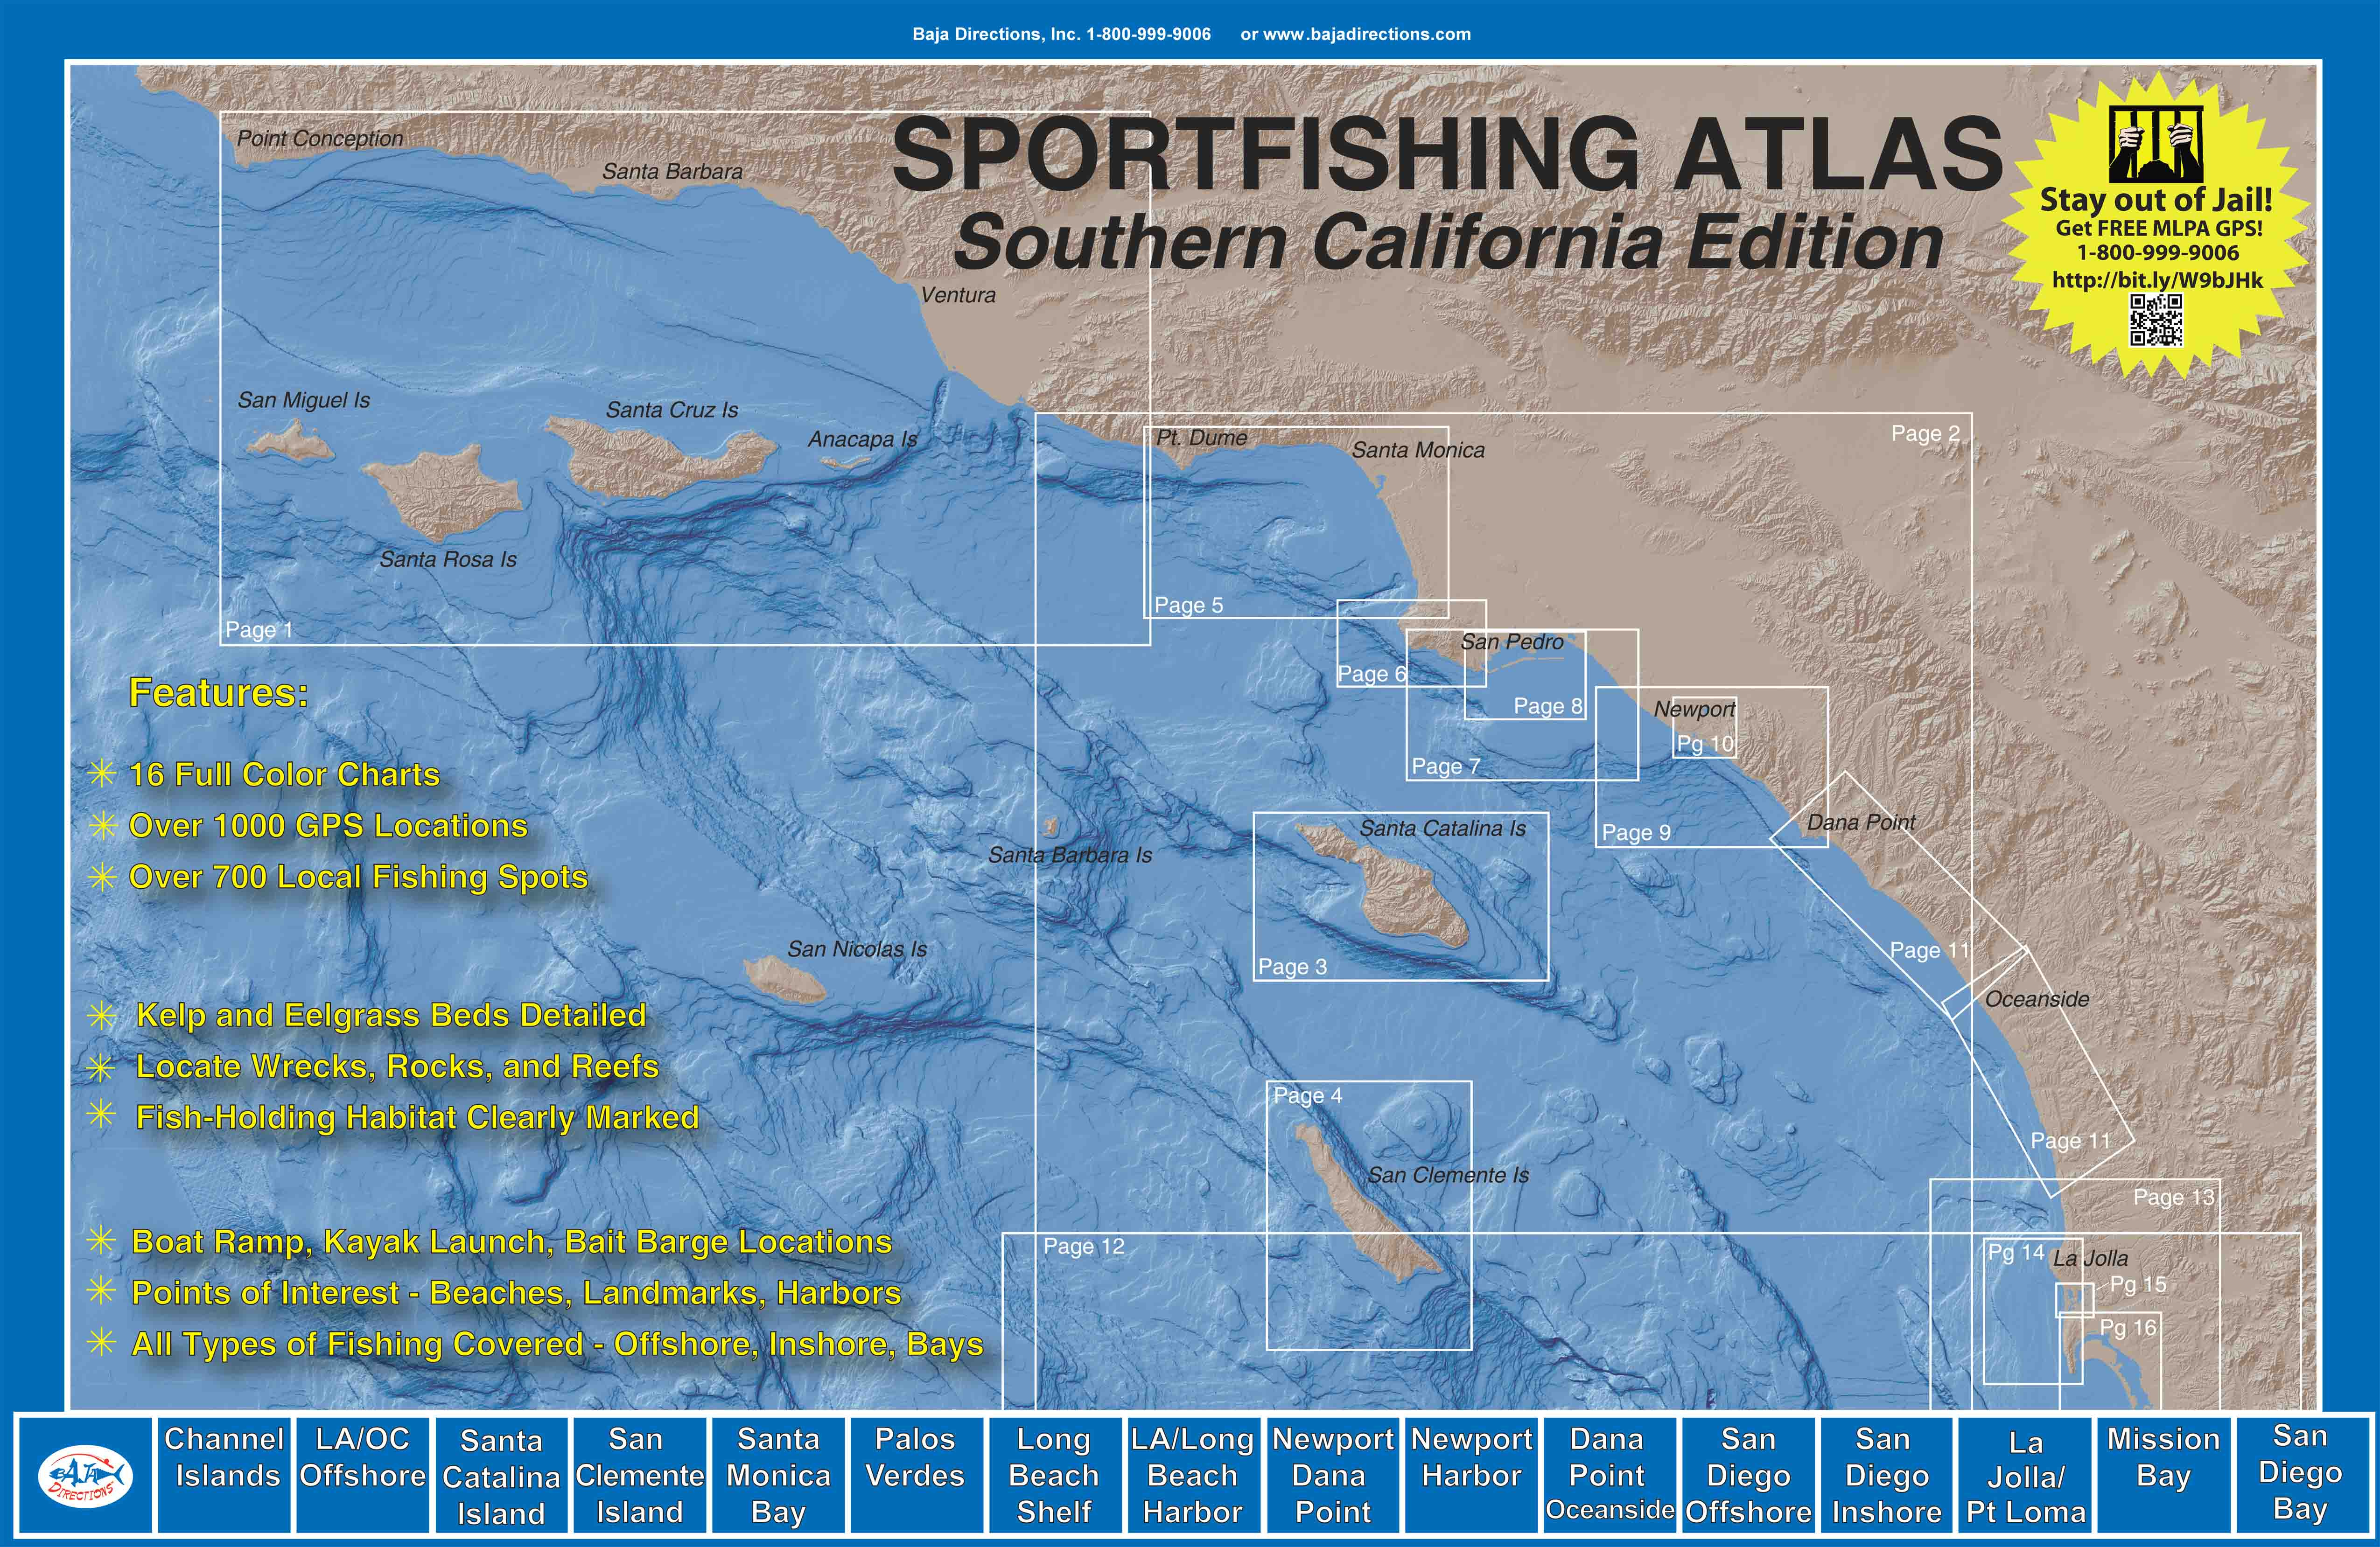 Sportfishing Atlas Southern California Edition - Baja Directions - California Fishing Map